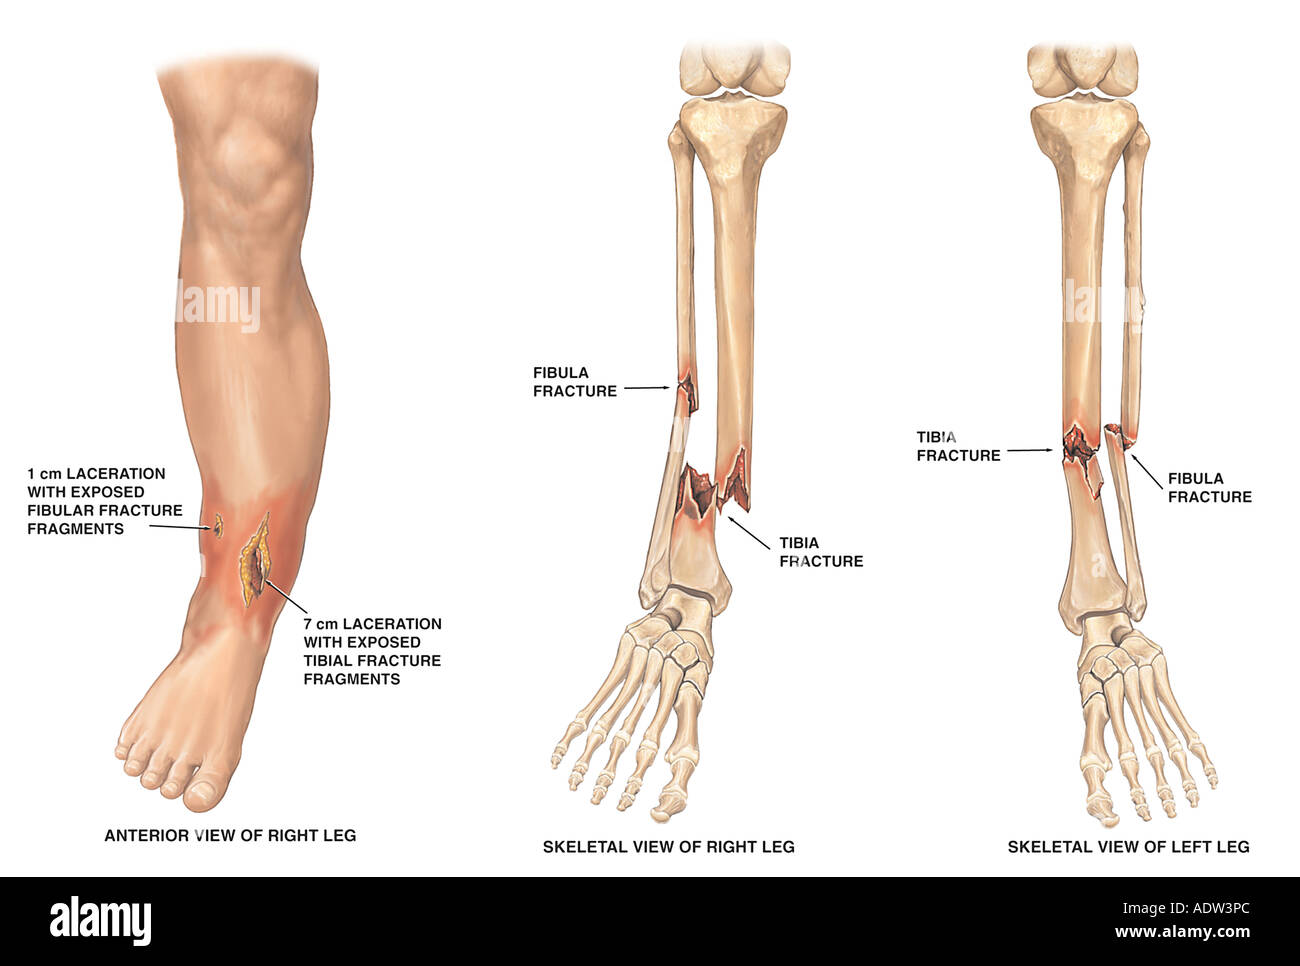 Bilateral Lower Leg Fractures - Stock Image